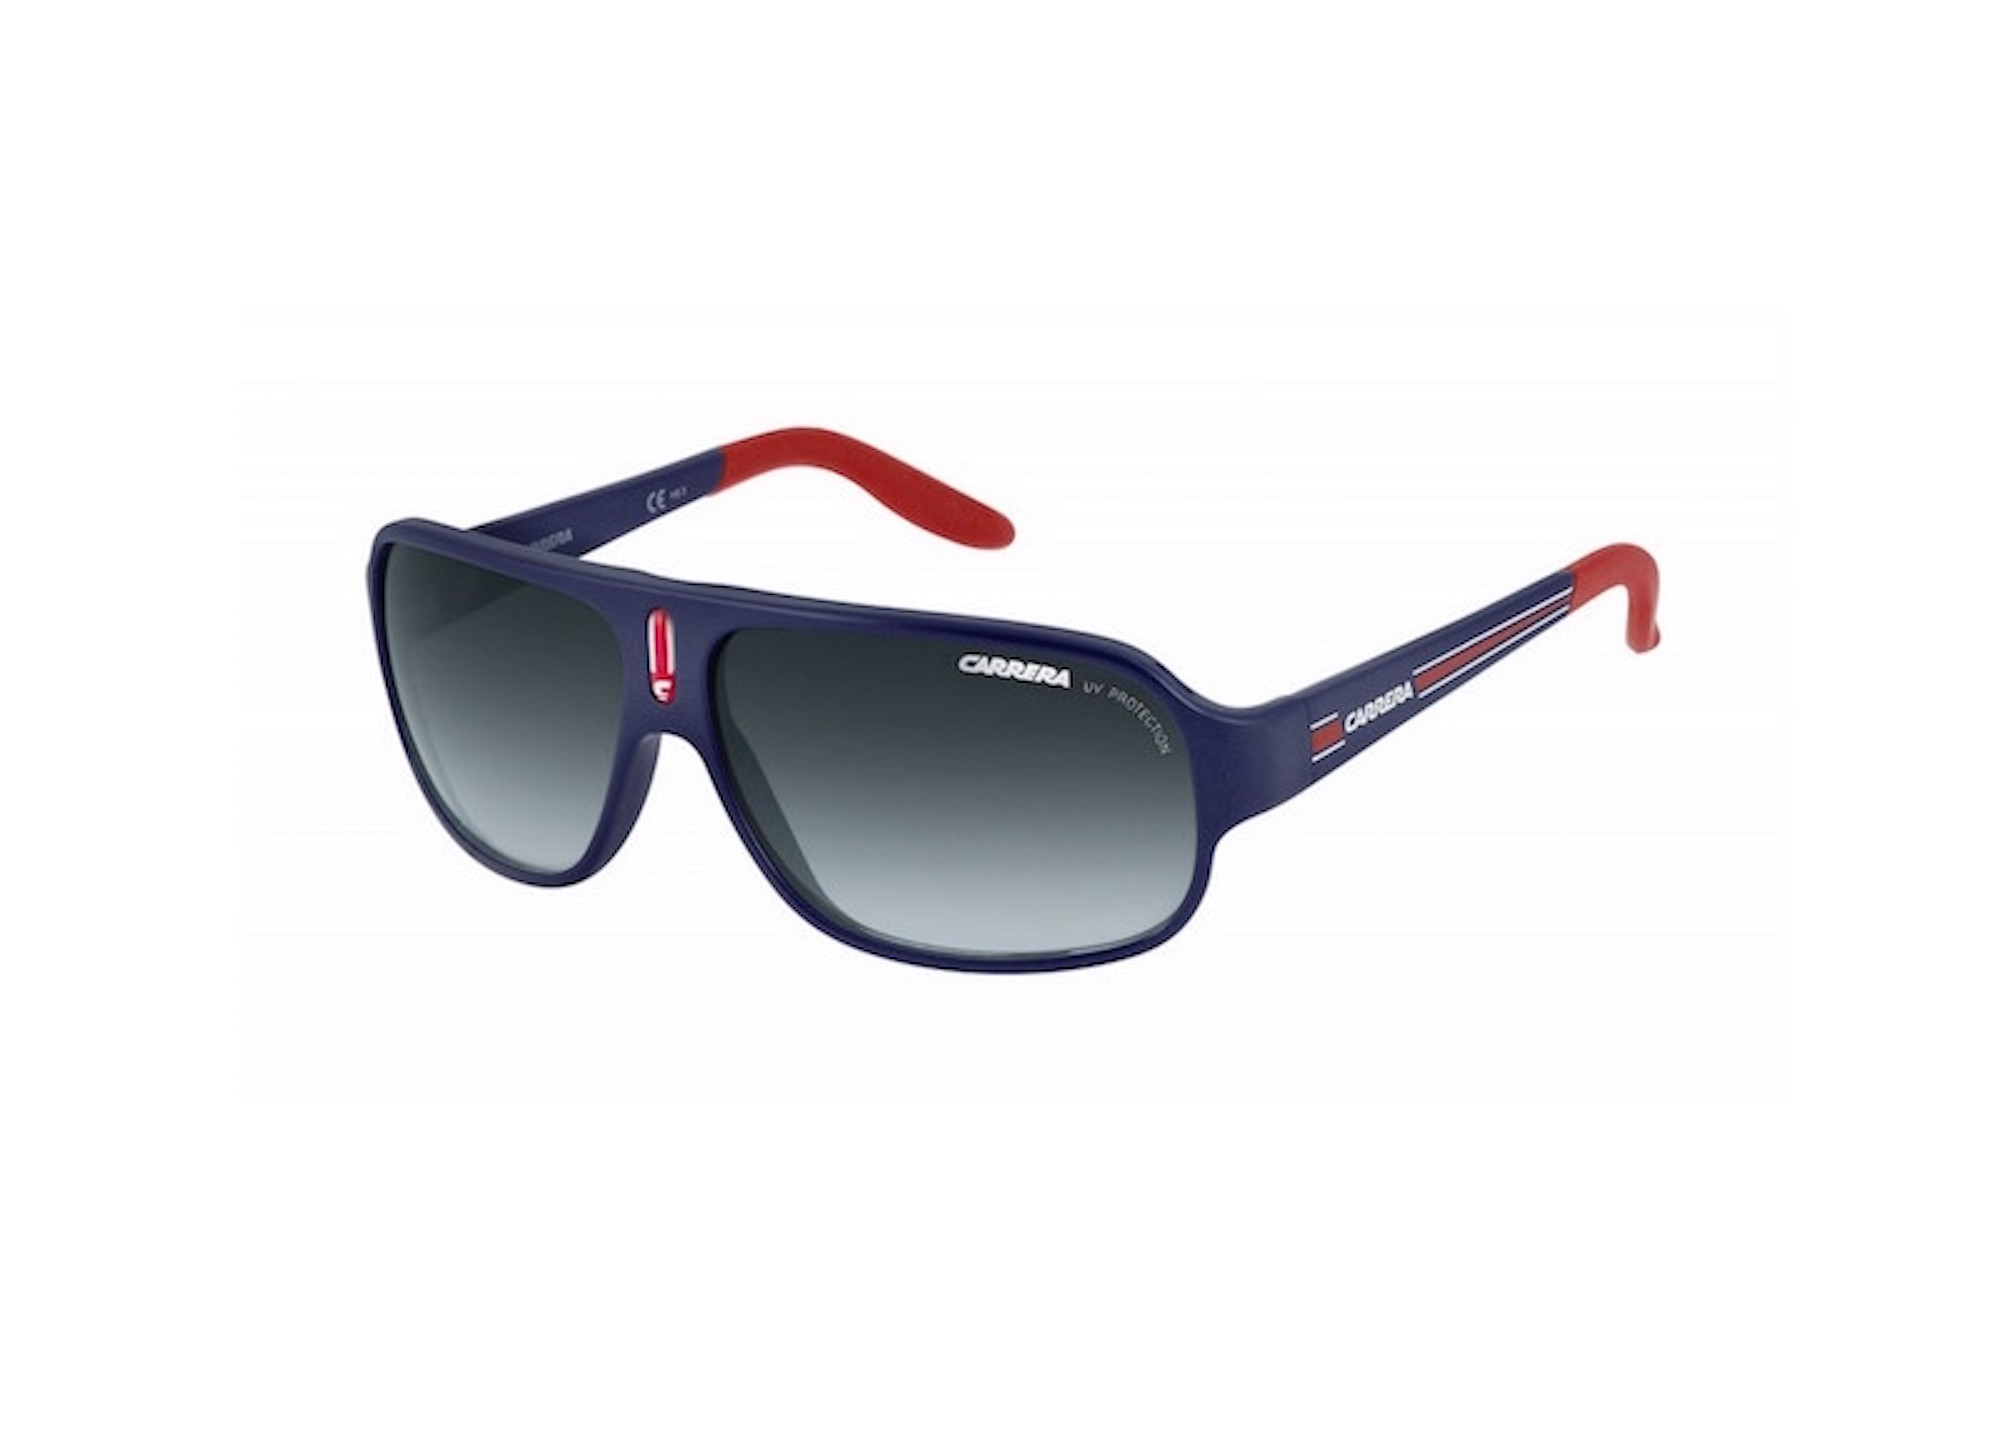 b364b897d8 Ray Bands Sunglasses Price In Nepal Iphone « Heritage Malta